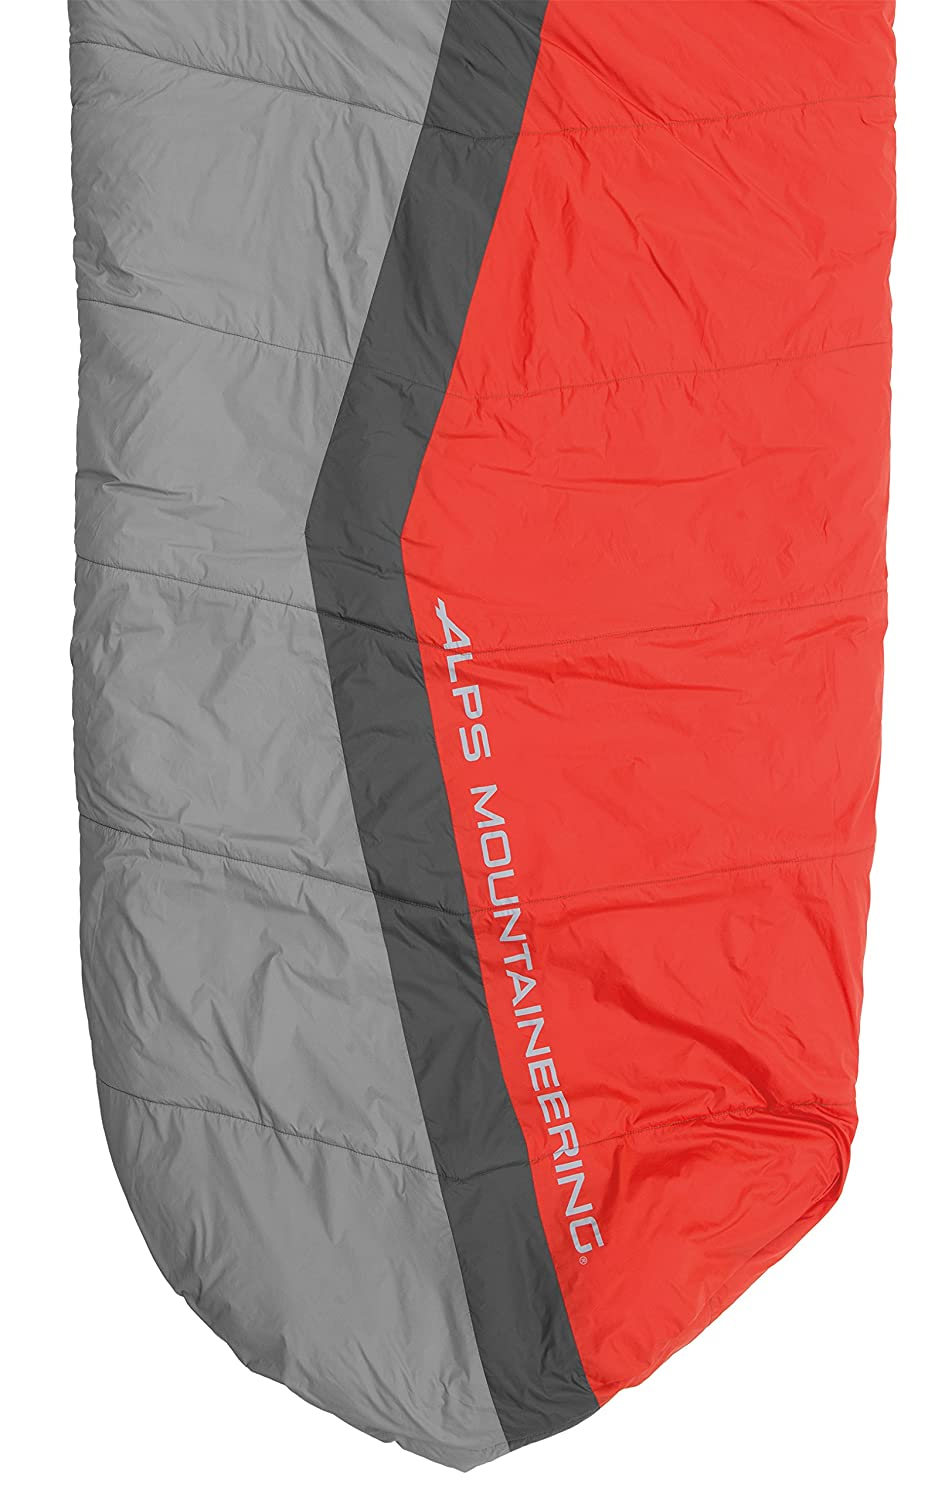 ALPS Mountaineering Cinch 20 Sleeping Bag